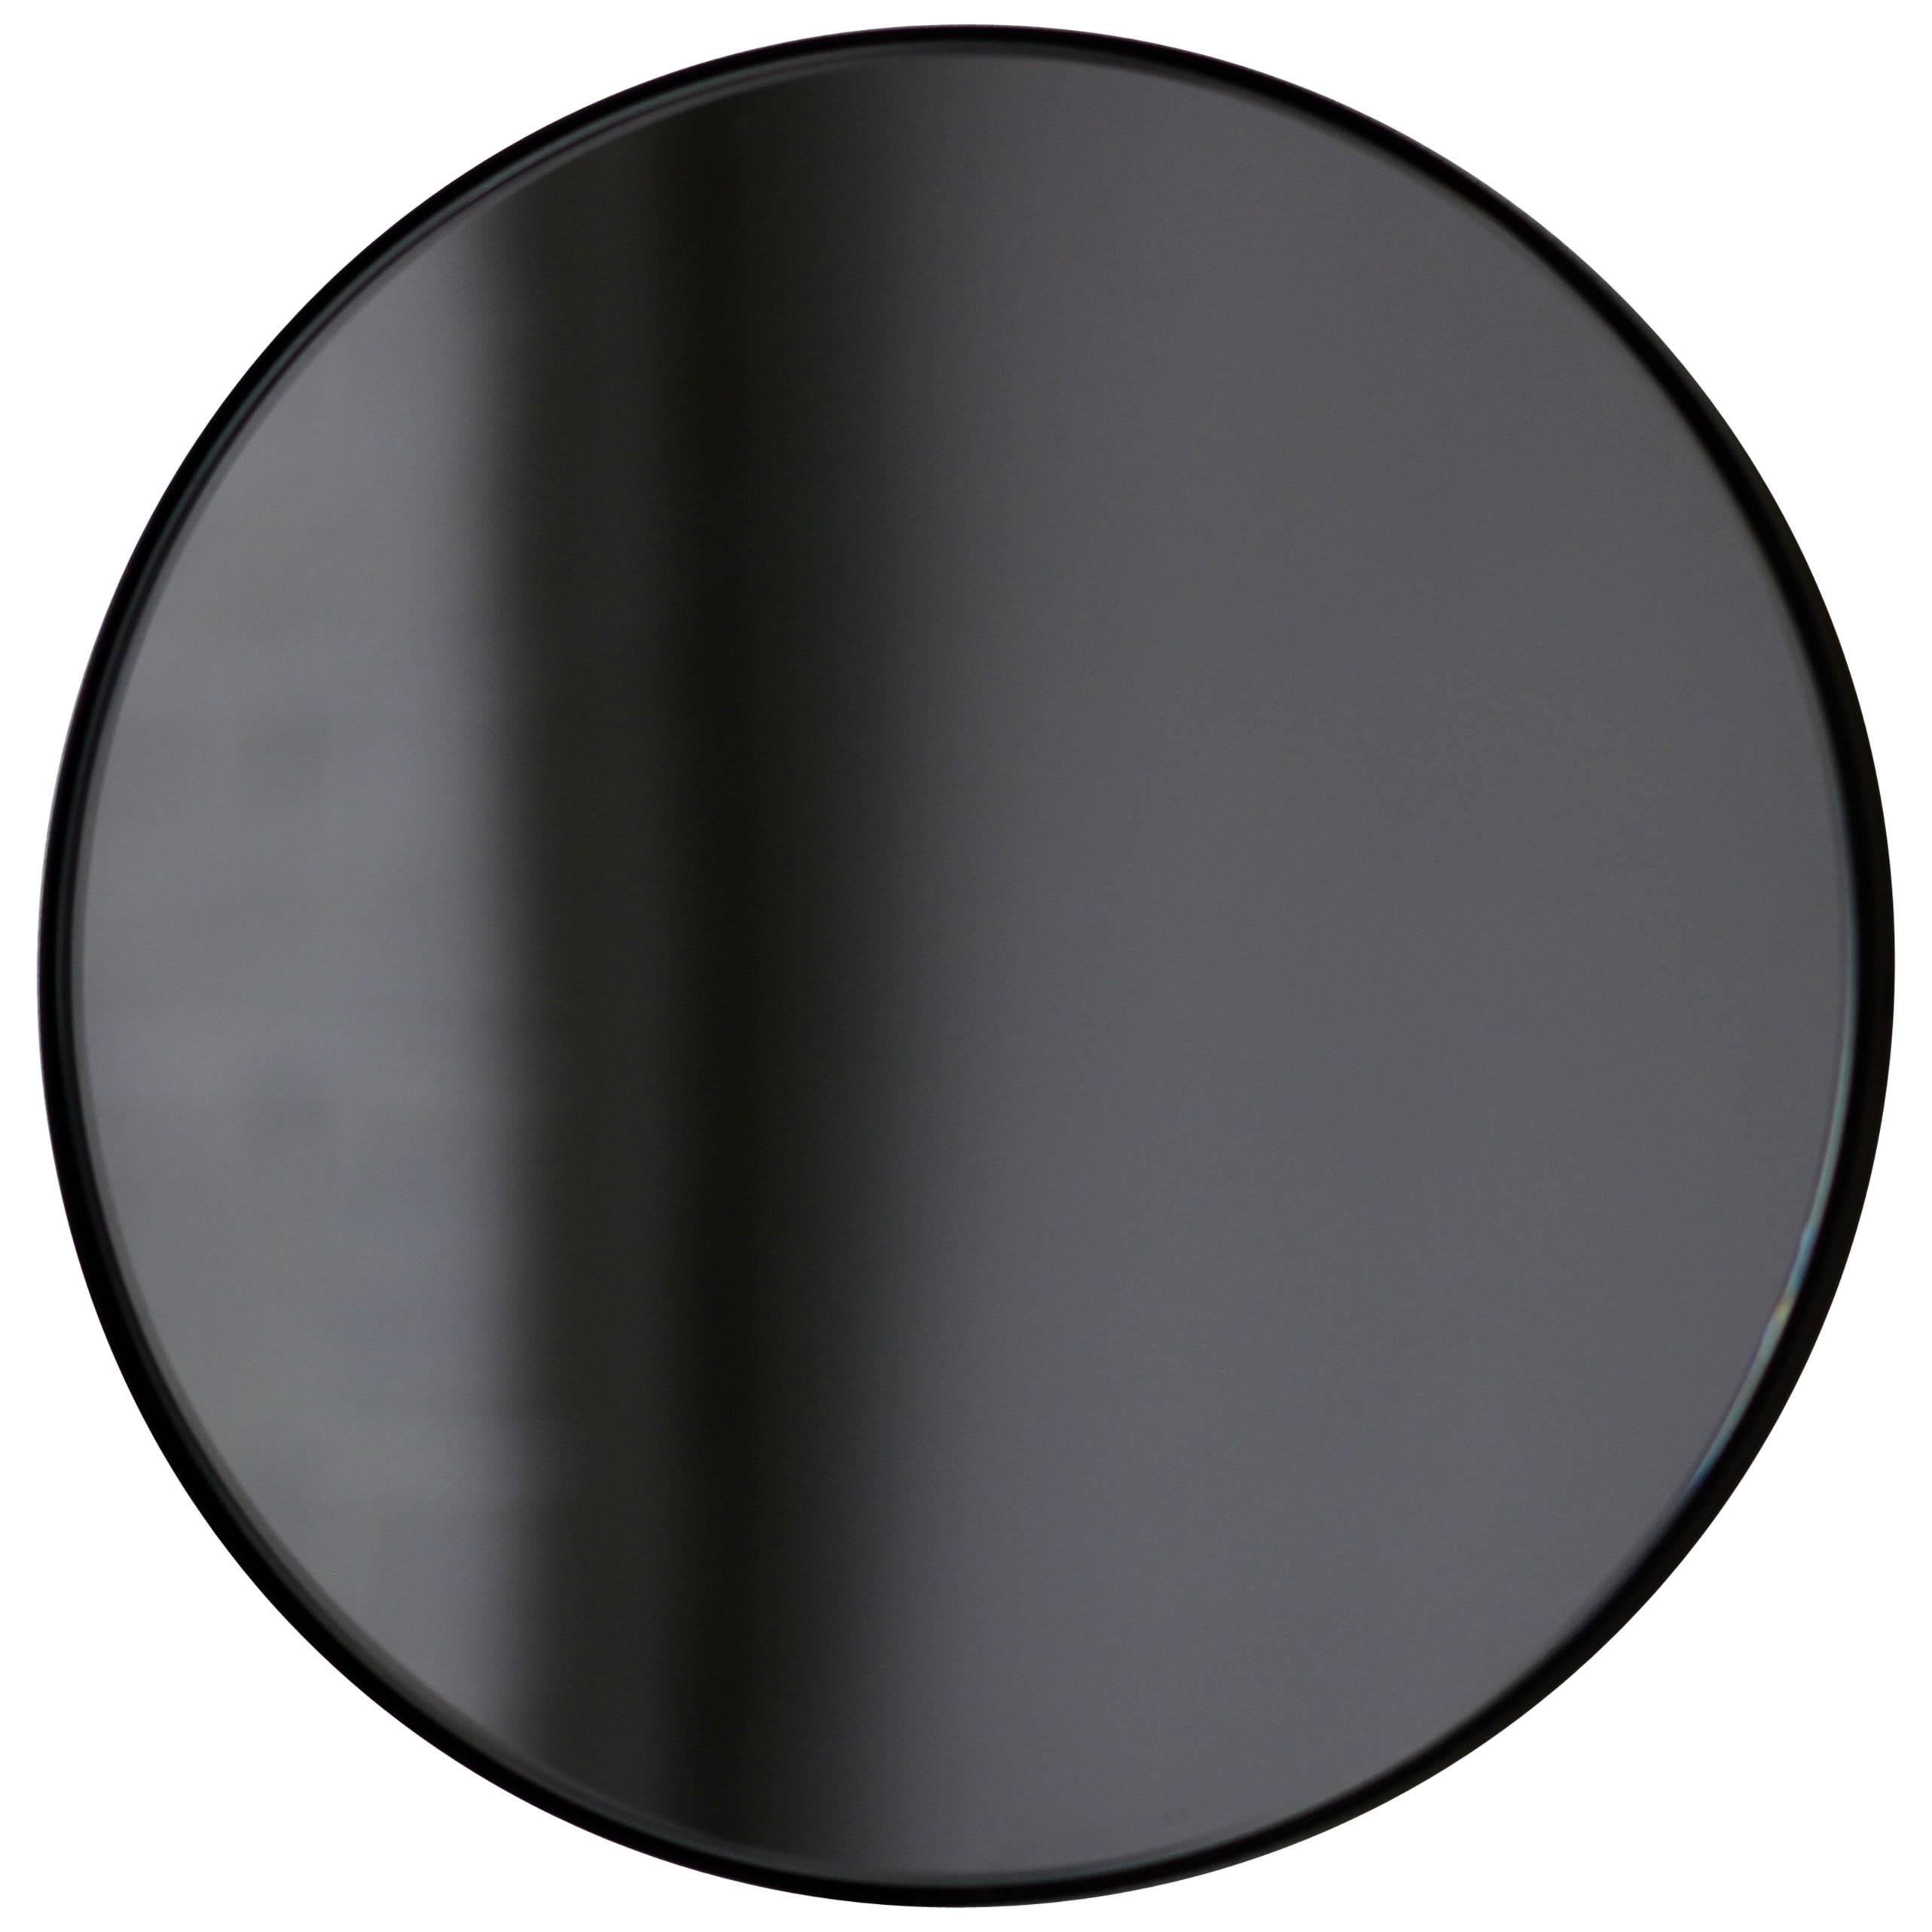 Orbis™ Black Tinted Bespoke Contemporary Round  Mirror with Black Frame - Large